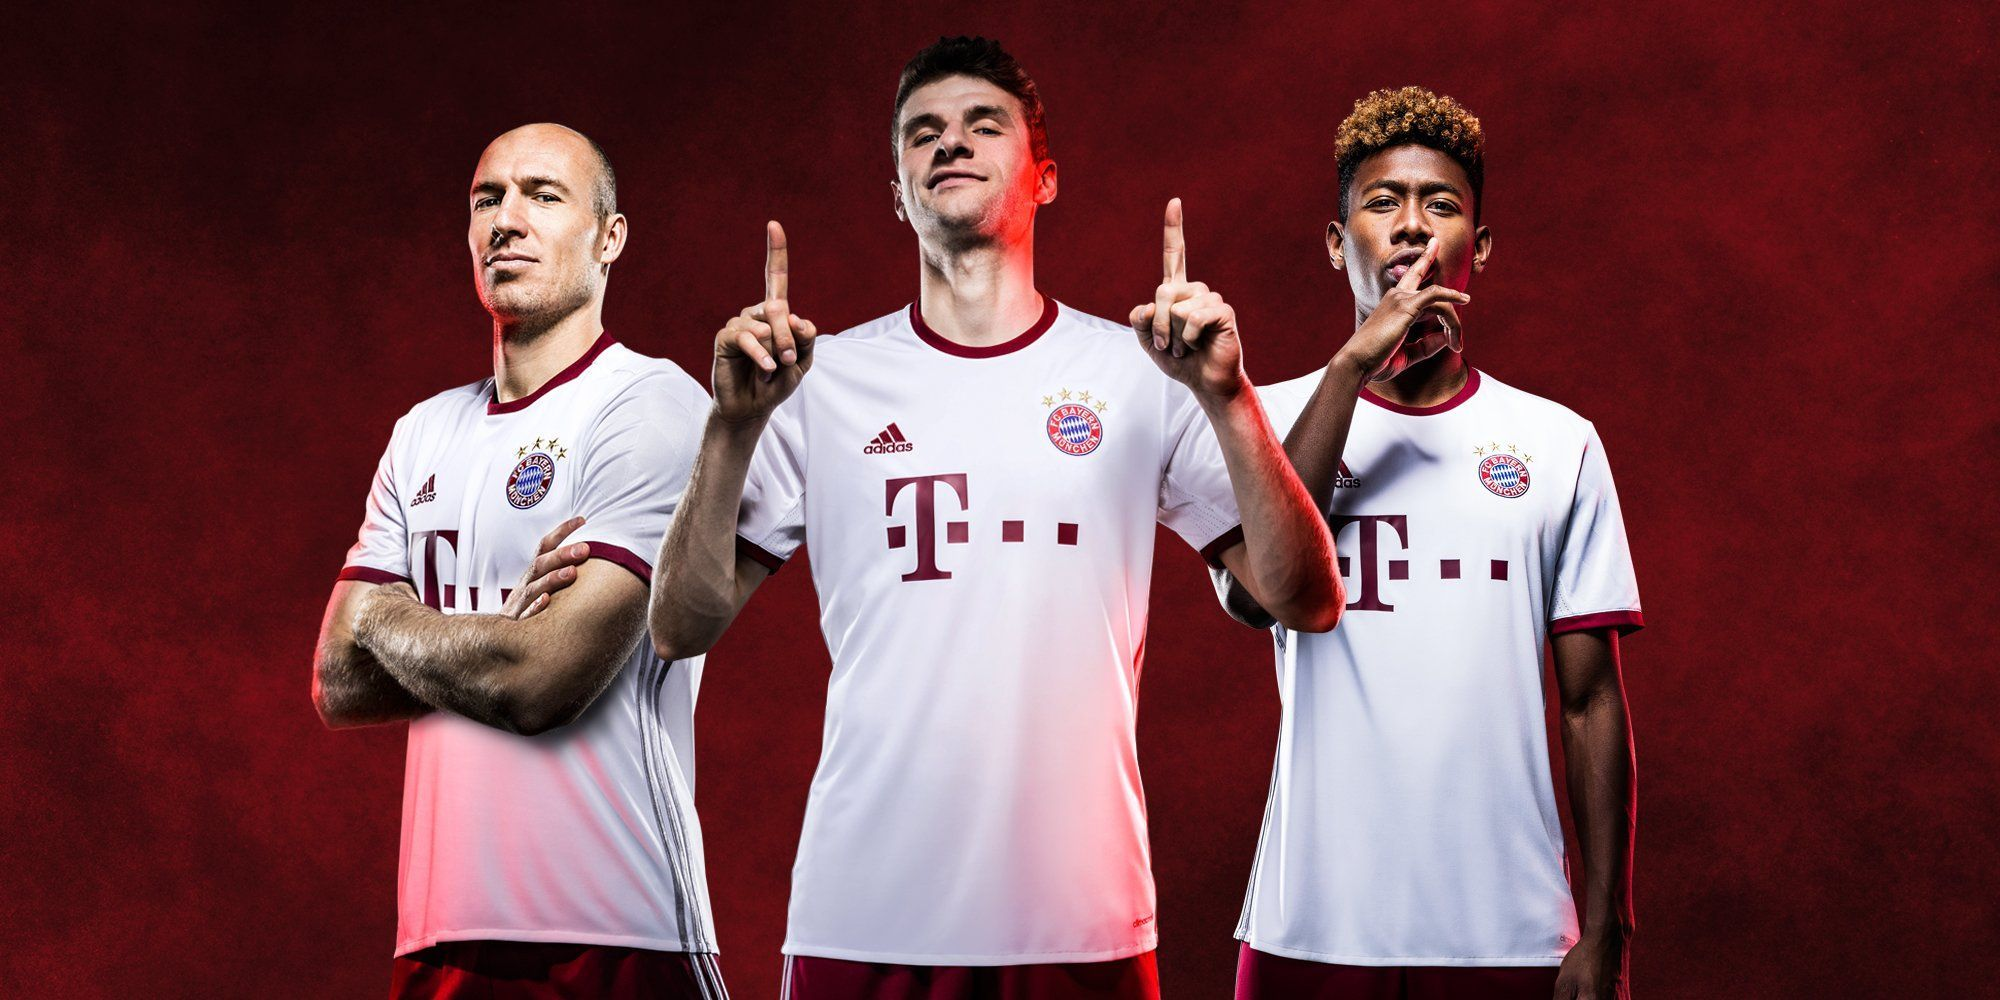 champions league trikot adidas del bayern munich 2016 2017 planeta fobal. Black Bedroom Furniture Sets. Home Design Ideas